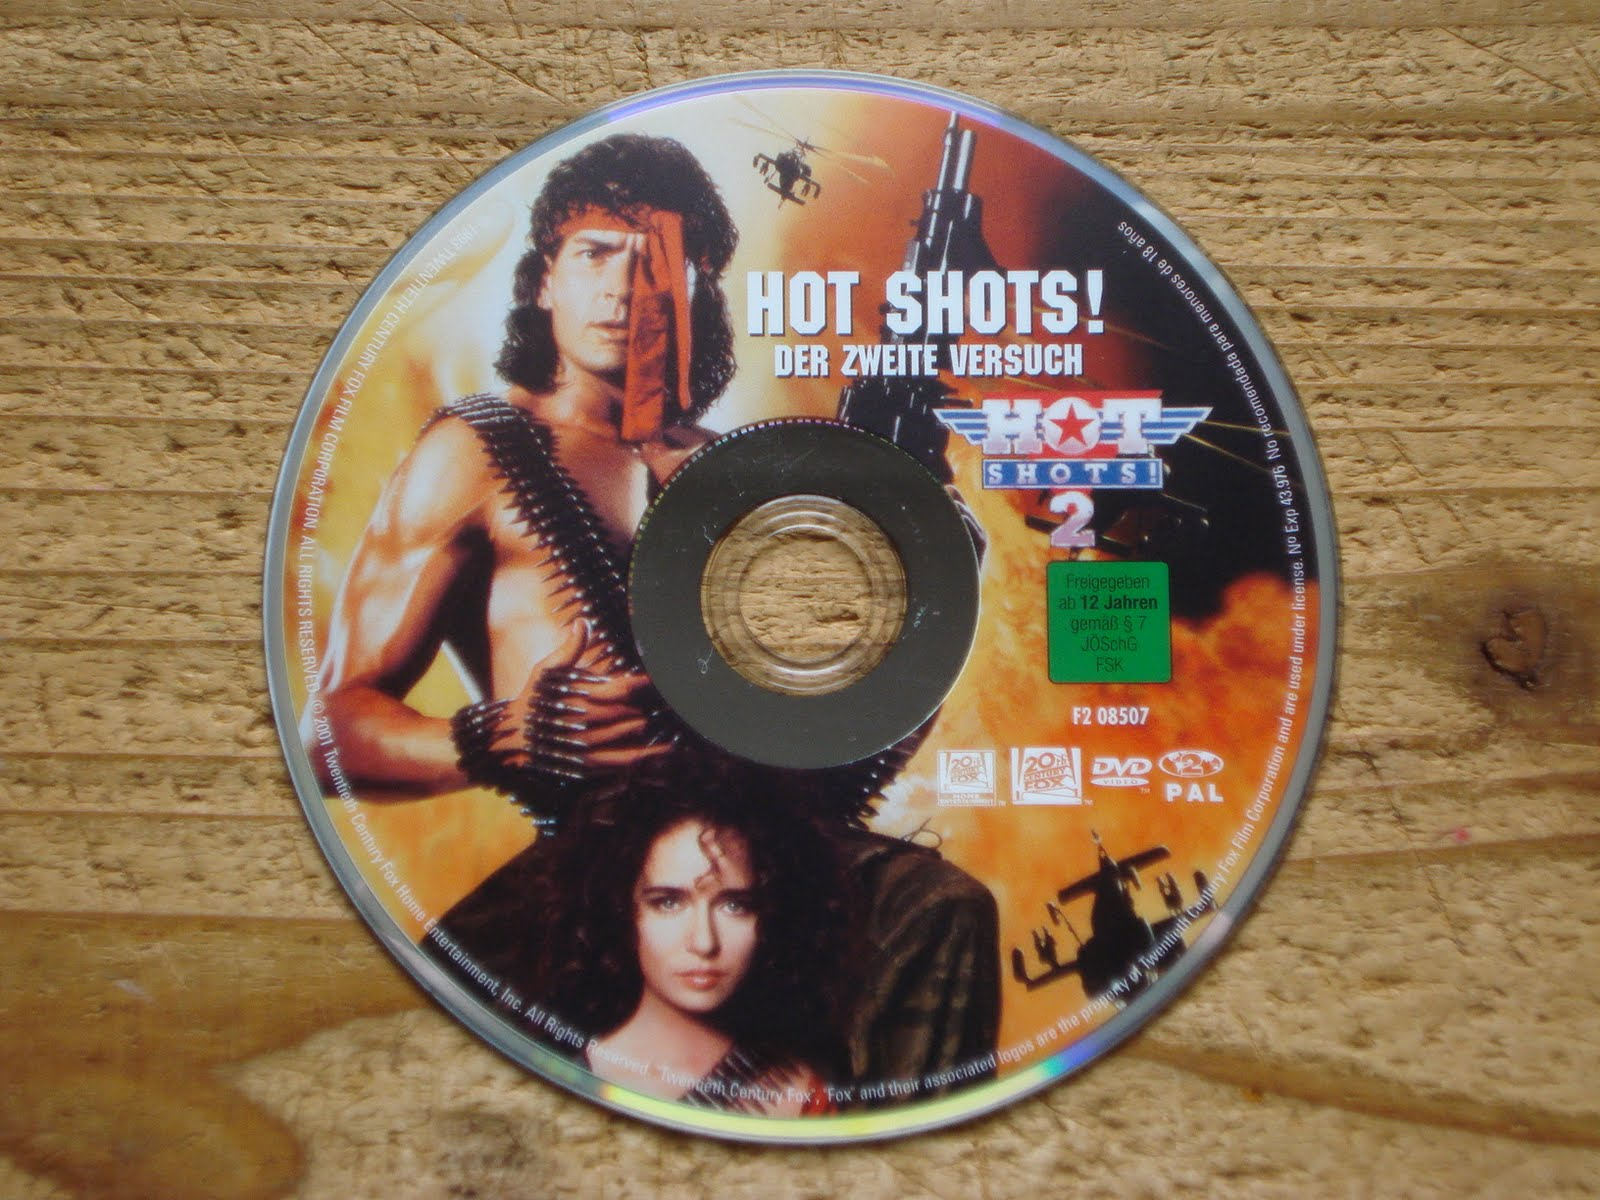 Hot Shots Part Deux Hot shots! part deux (r2 pt)